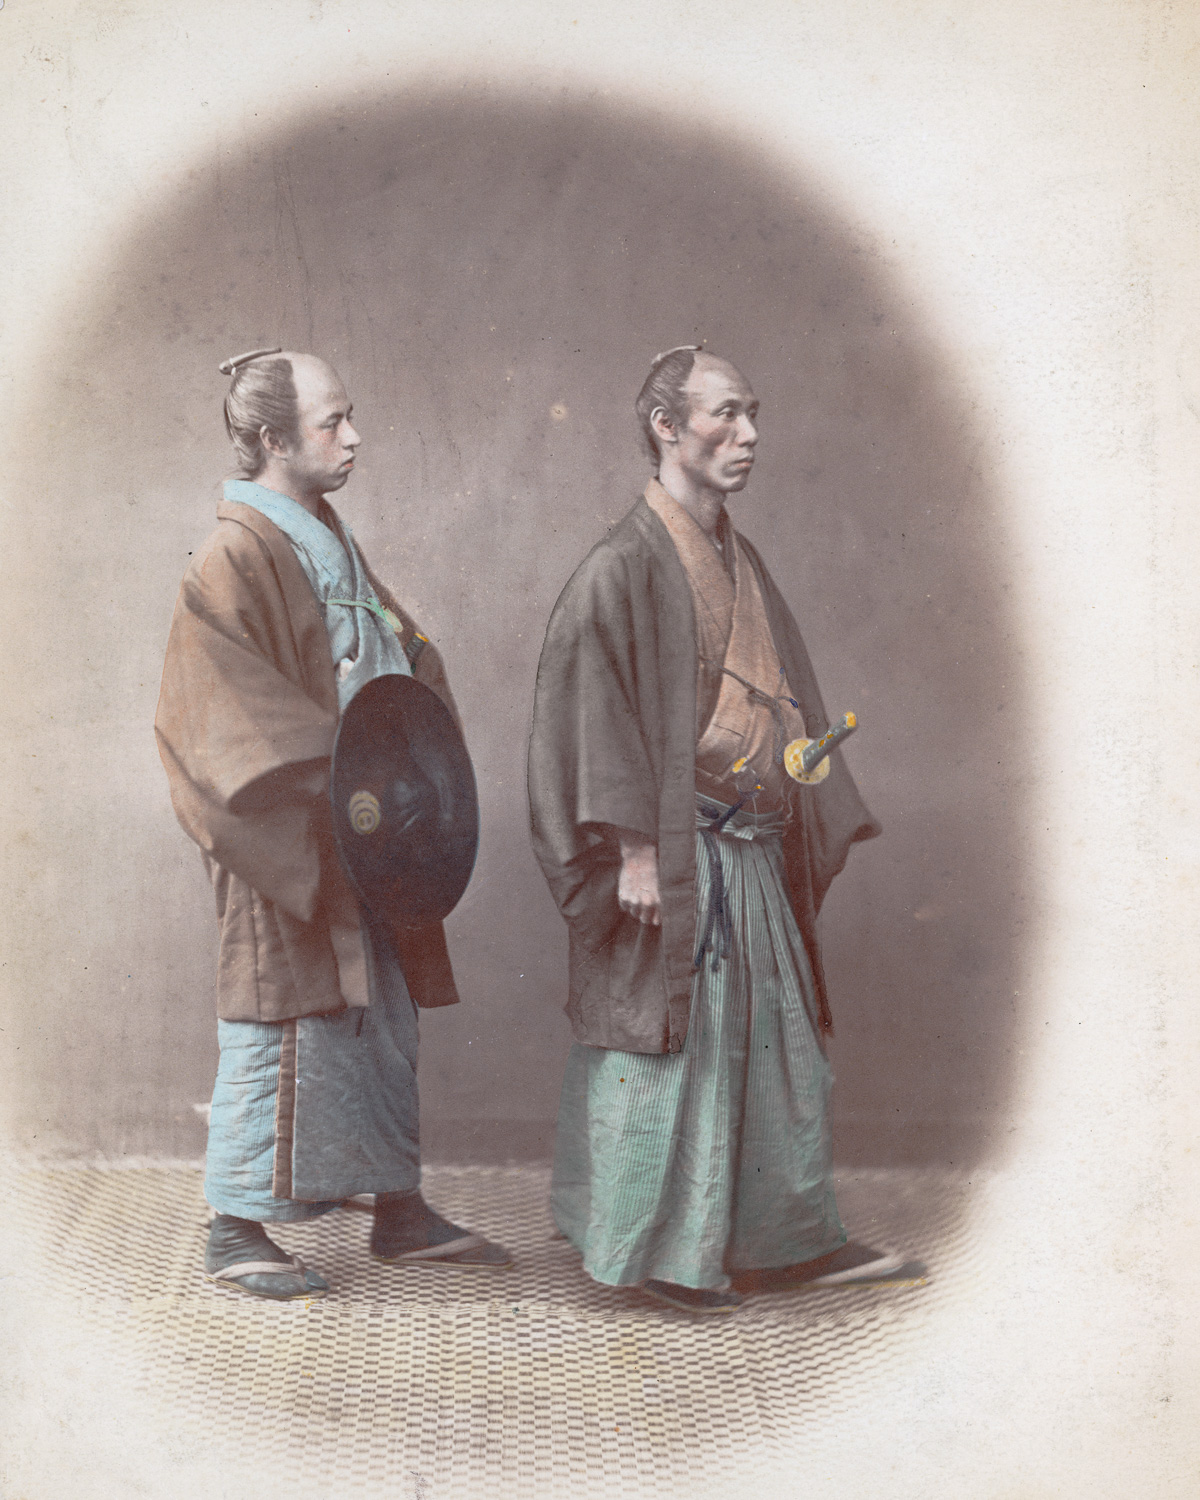 an overview of the japans national moral code called bushido Bushido: the soul of japan, which has been called the best explanation of bushido in the english language, outlines the codes and ethics of the samurai warrior class of tokugawa era japan much like the code of chivalry of european knights, bushido lays down stringent rules of behavior towards superiors and inferiors, of behavior in battle.